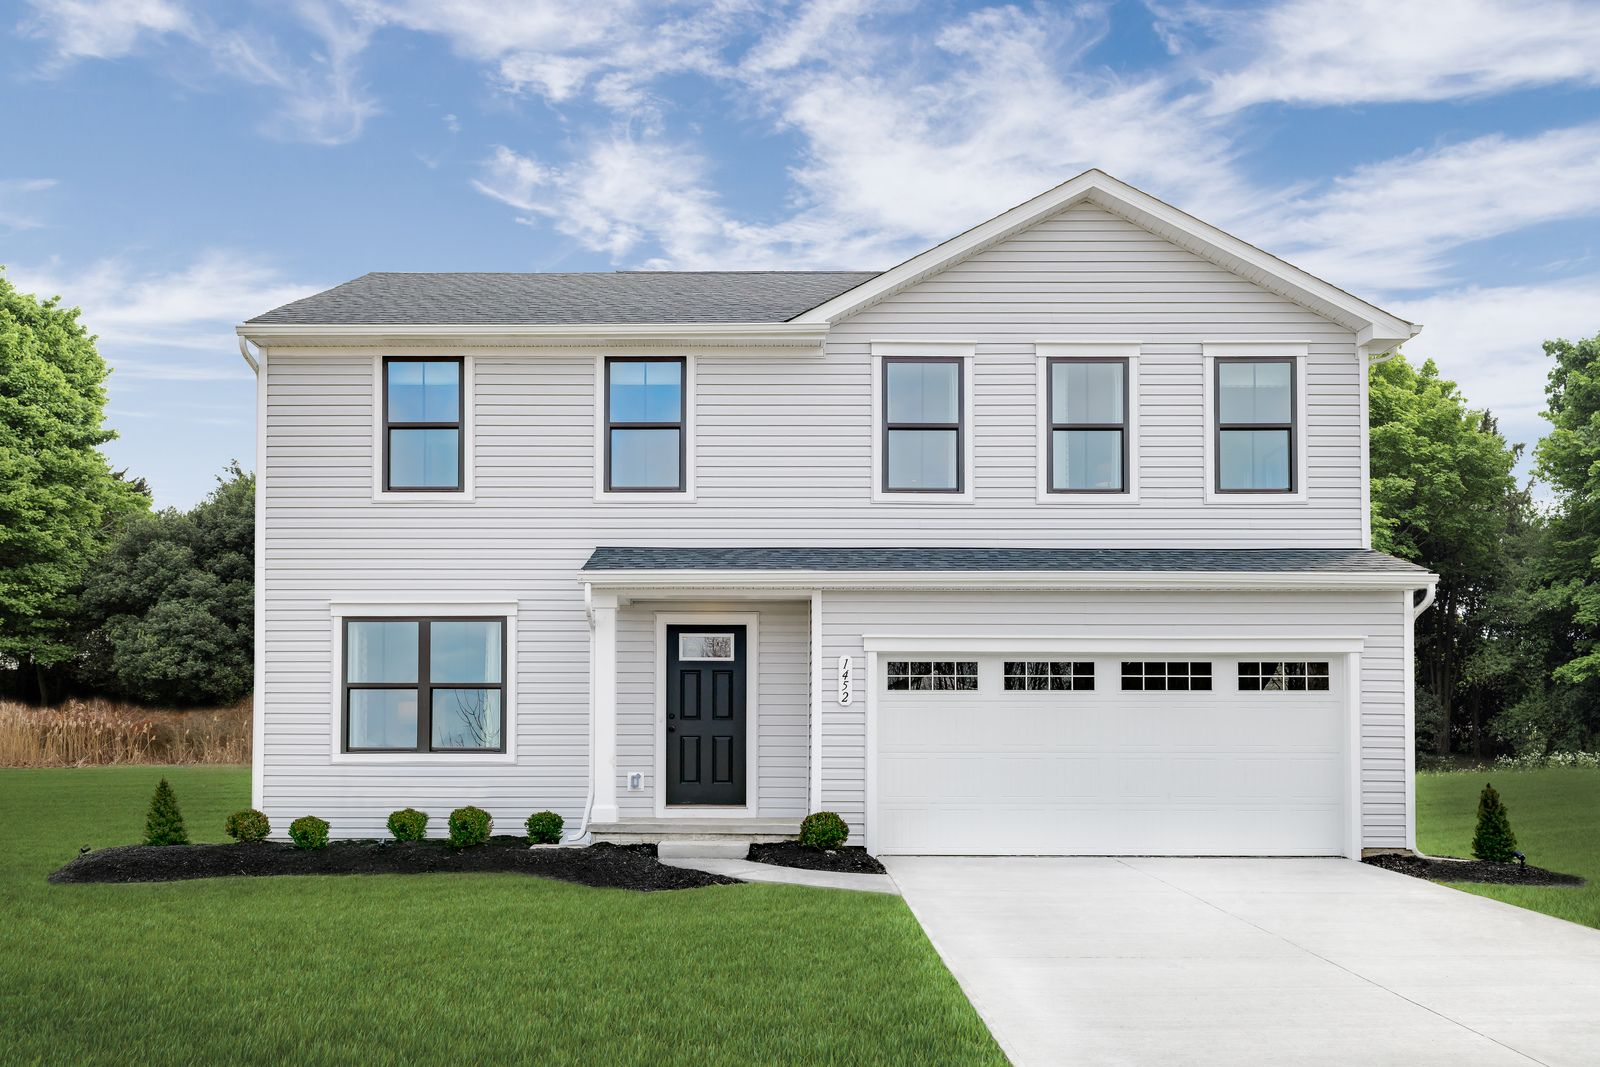 WELCOME HOME TO ALKIRE RUN:New open concept homes w/ the space you need in Grove City—2-car garages, full basements w/ little to no money down. Near I-270 & 71, fromthe $260s.Click here to schedule your visit today!